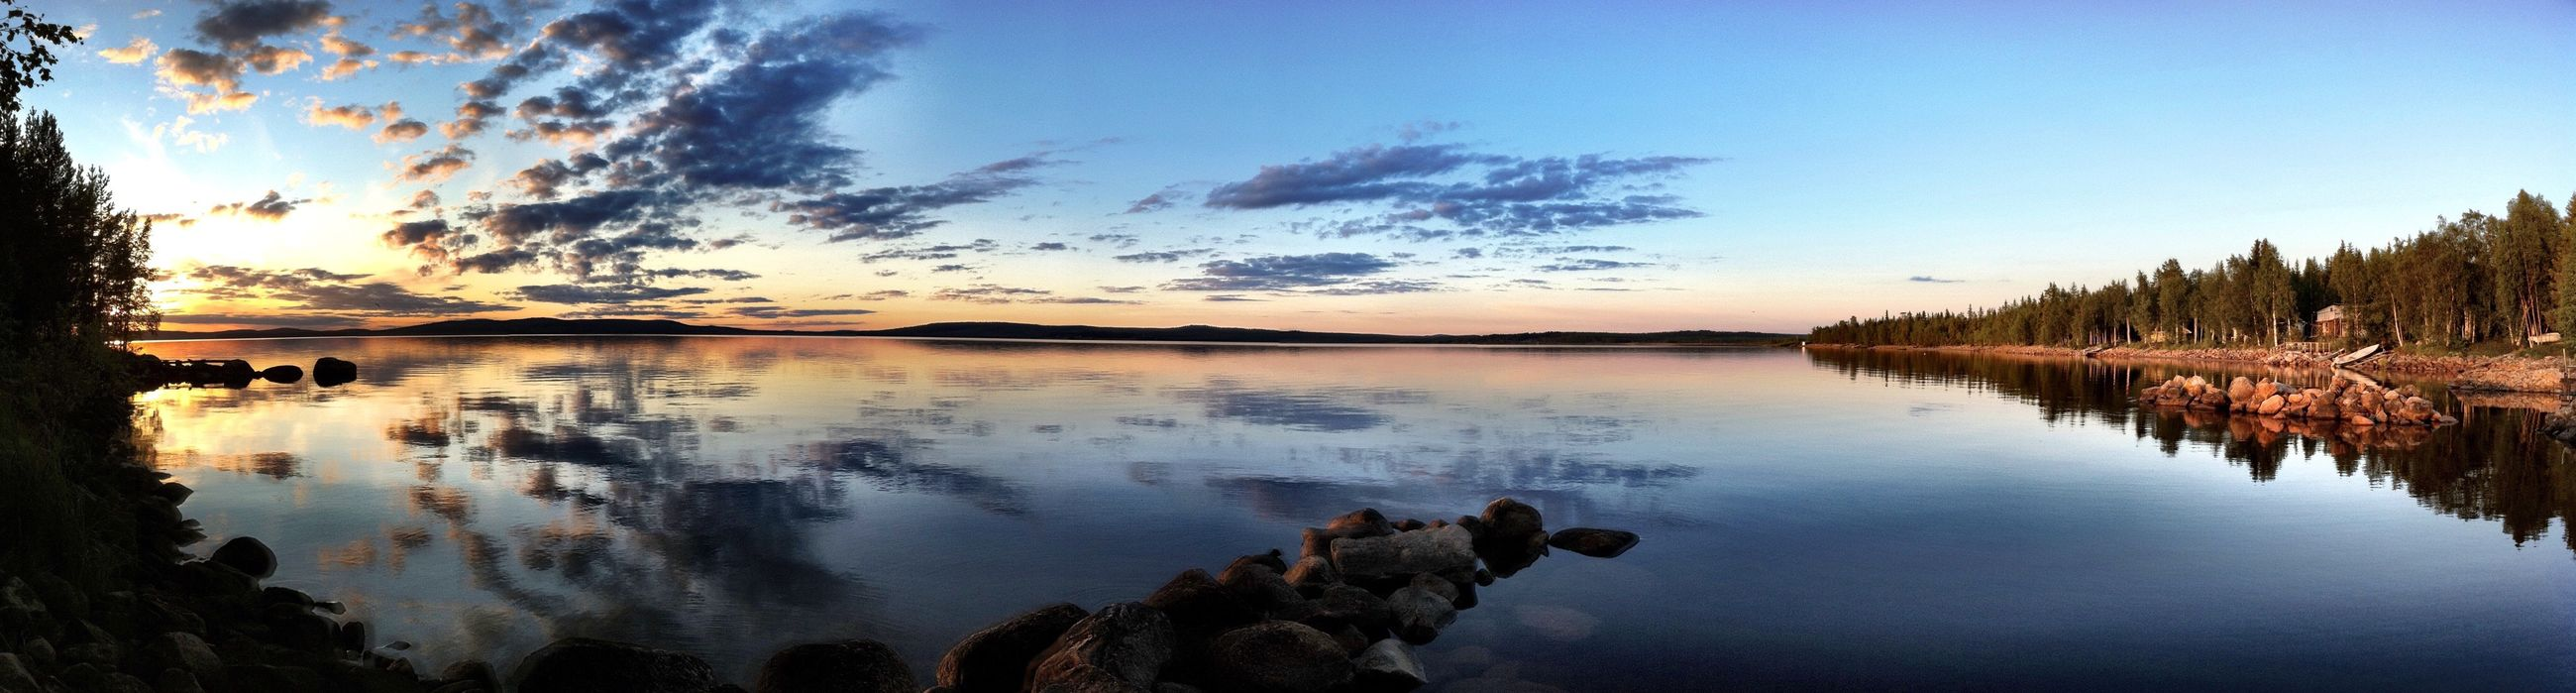 water, reflection, tranquil scene, tranquility, scenics, sky, beauty in nature, lake, sunset, nature, idyllic, sea, panoramic, calm, cloud - sky, blue, cloud, standing water, outdoors, silhouette